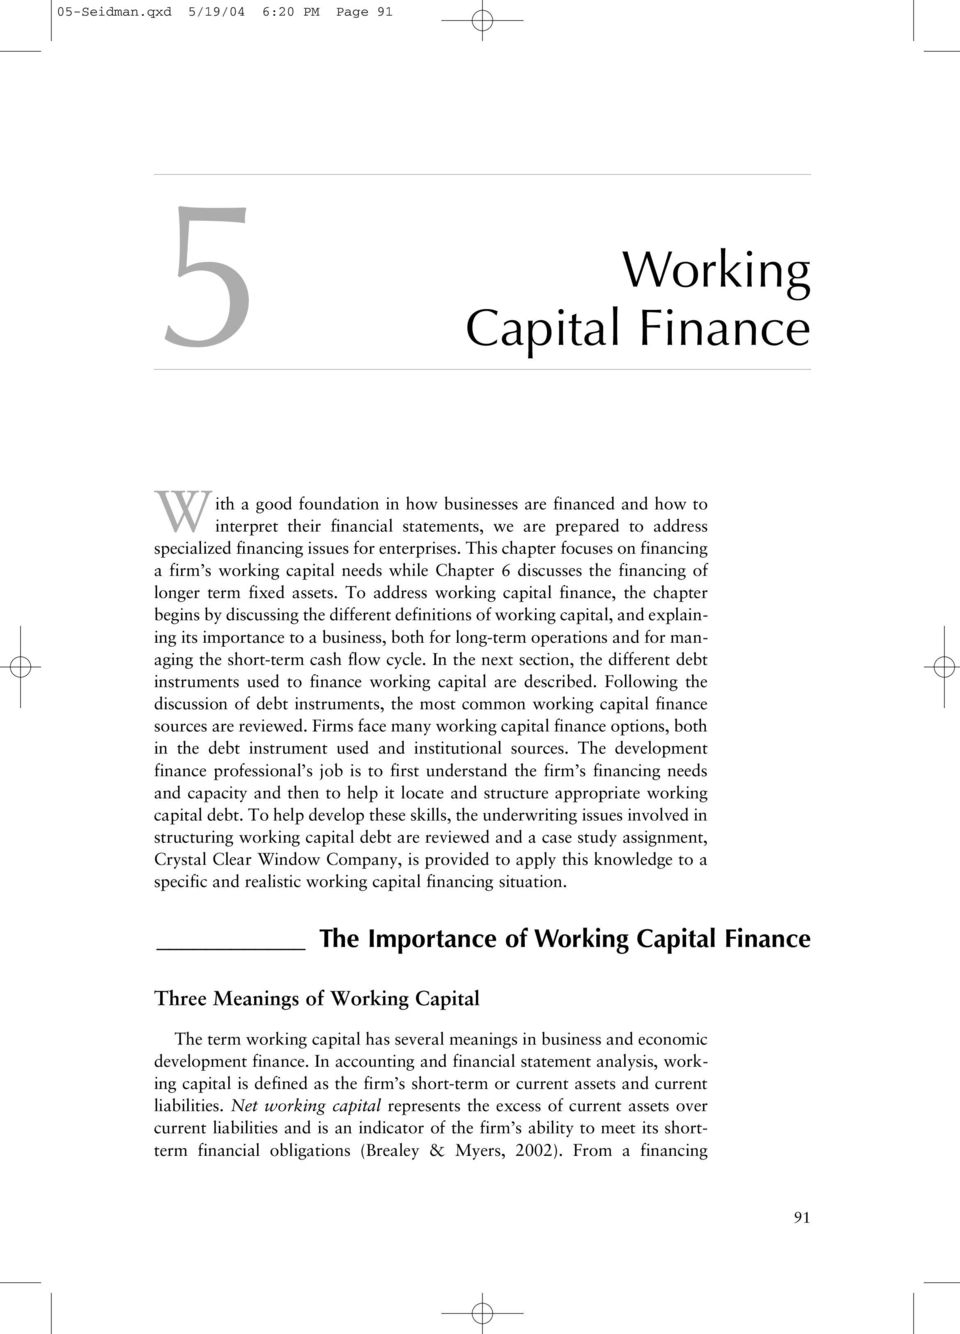 financing issues for enterprises. This chapter focuses on financing a firm s working capital needs while Chapter 6 discusses the financing of longer term fixed assets.